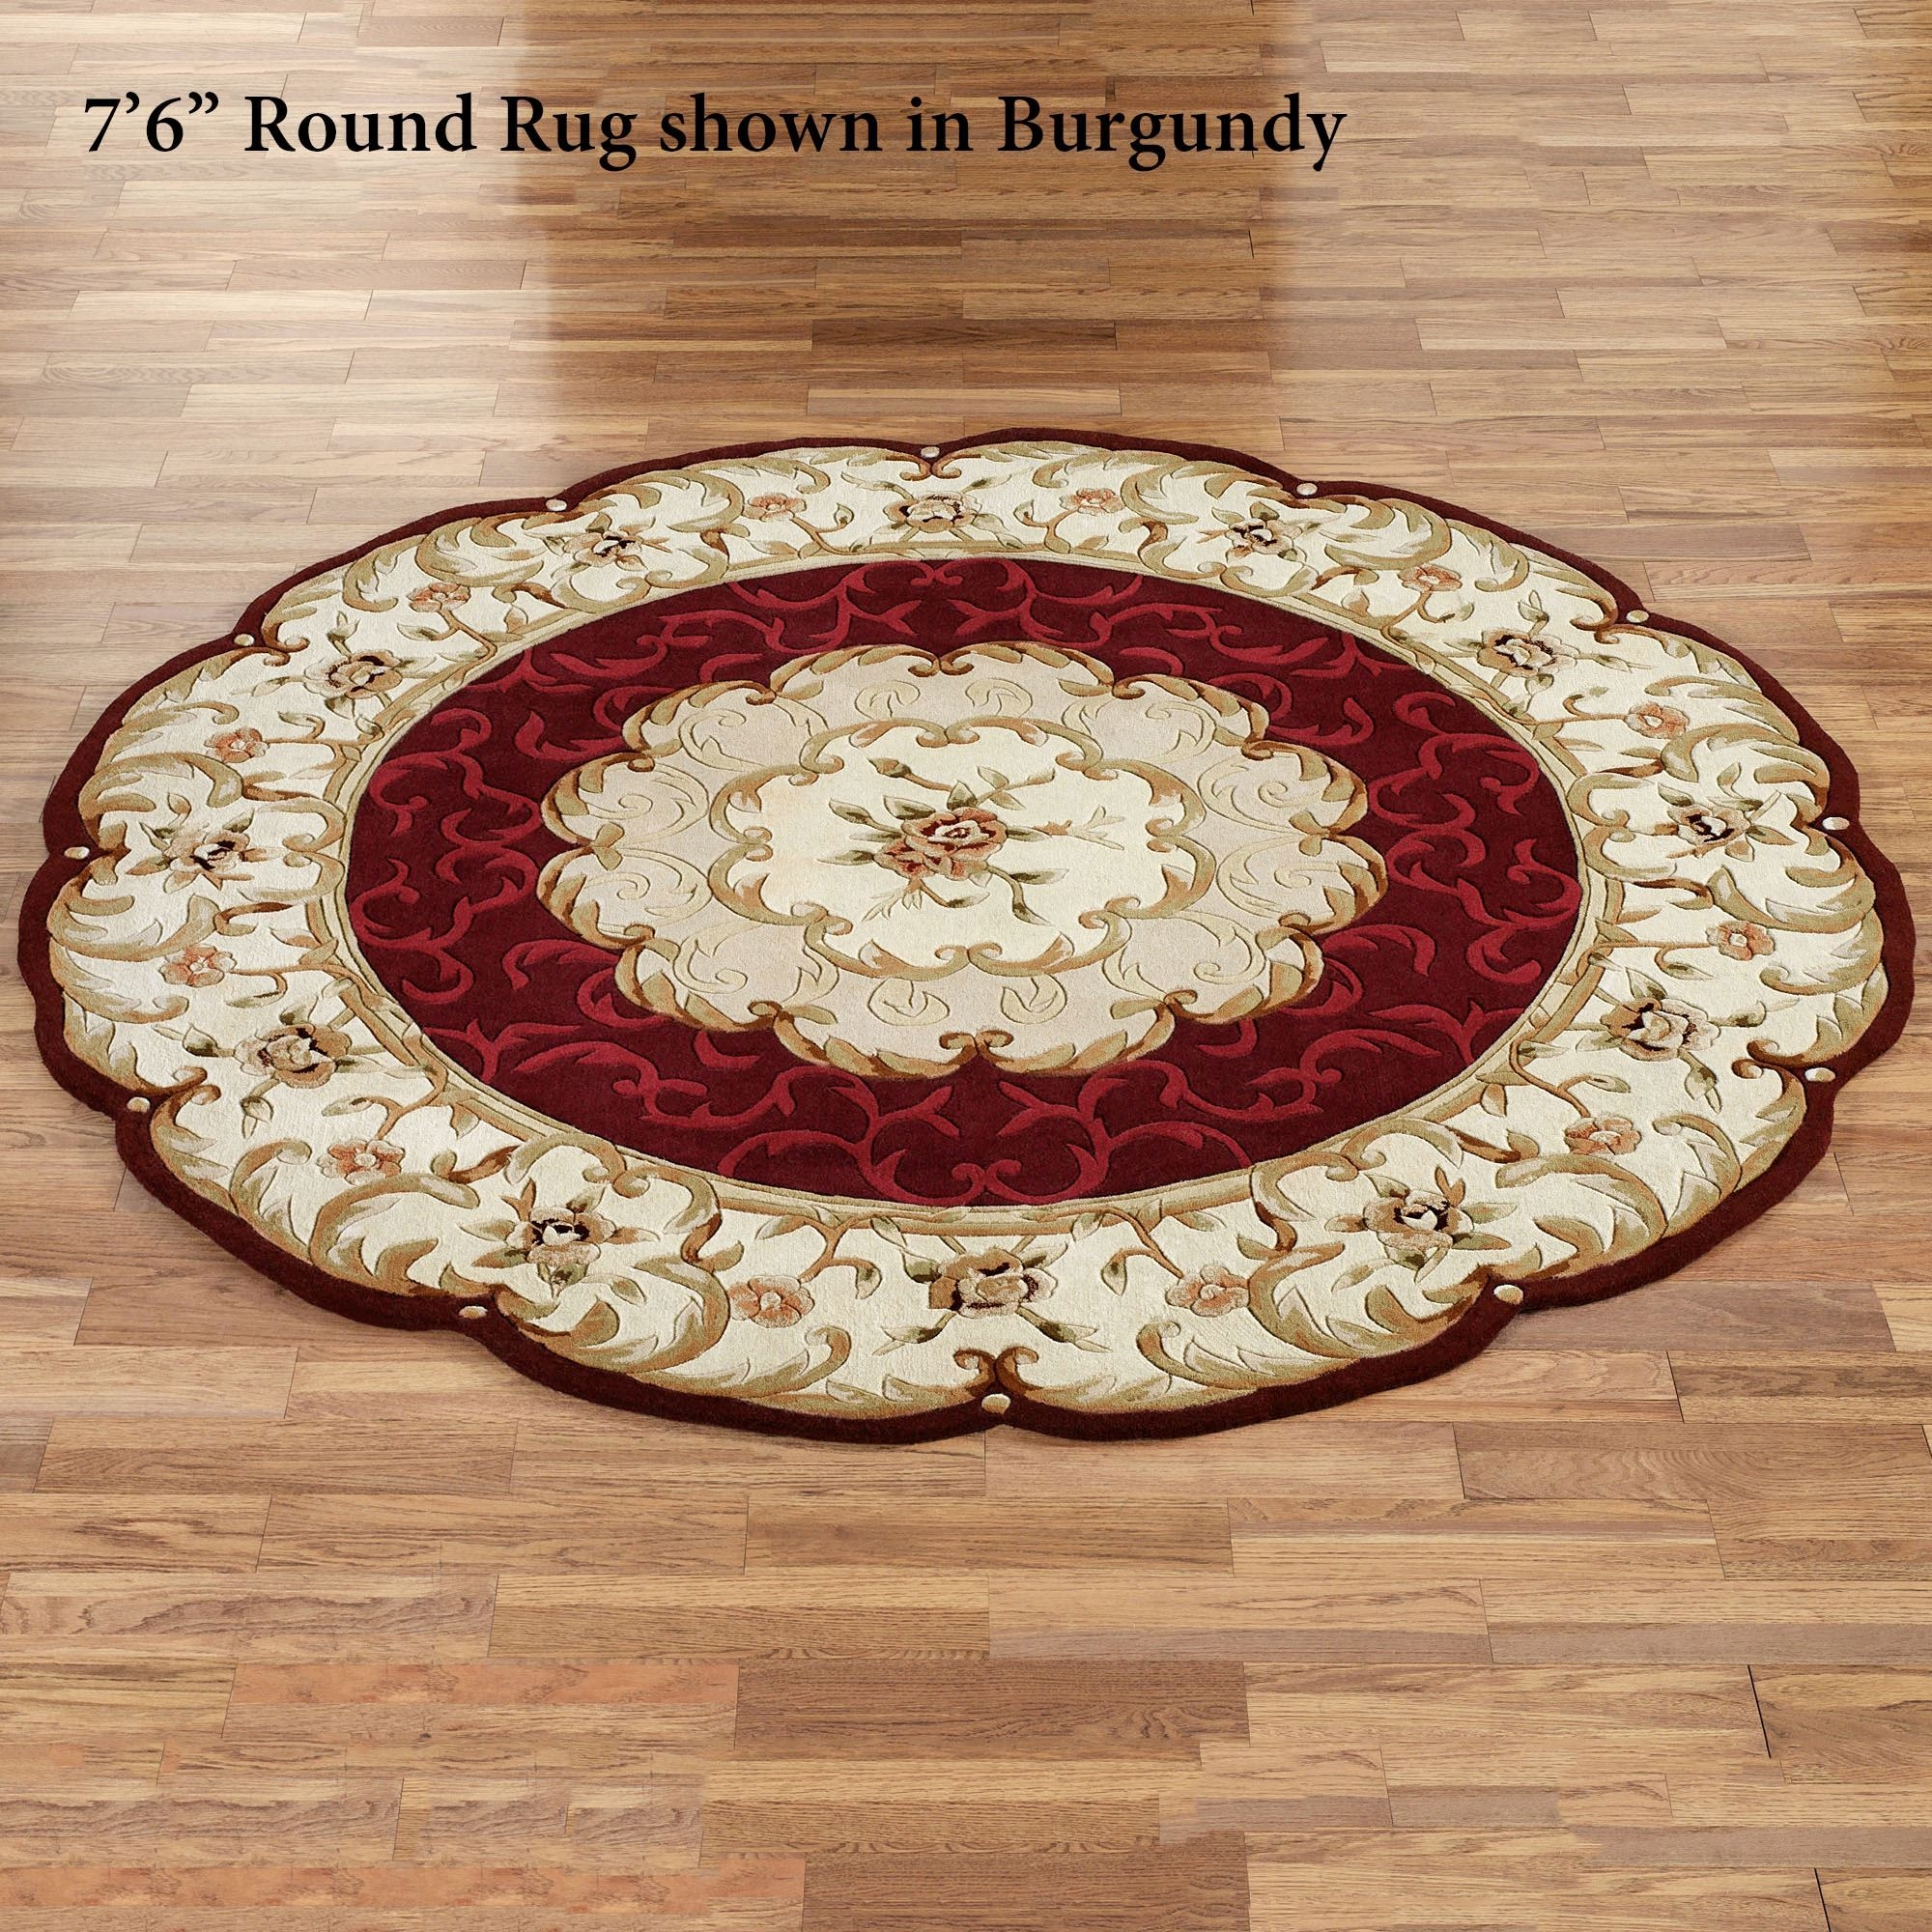 Circular Area Rugs The Rug Establishment Black Circle Rug Within Rounds Rugs (View 7 of 15)